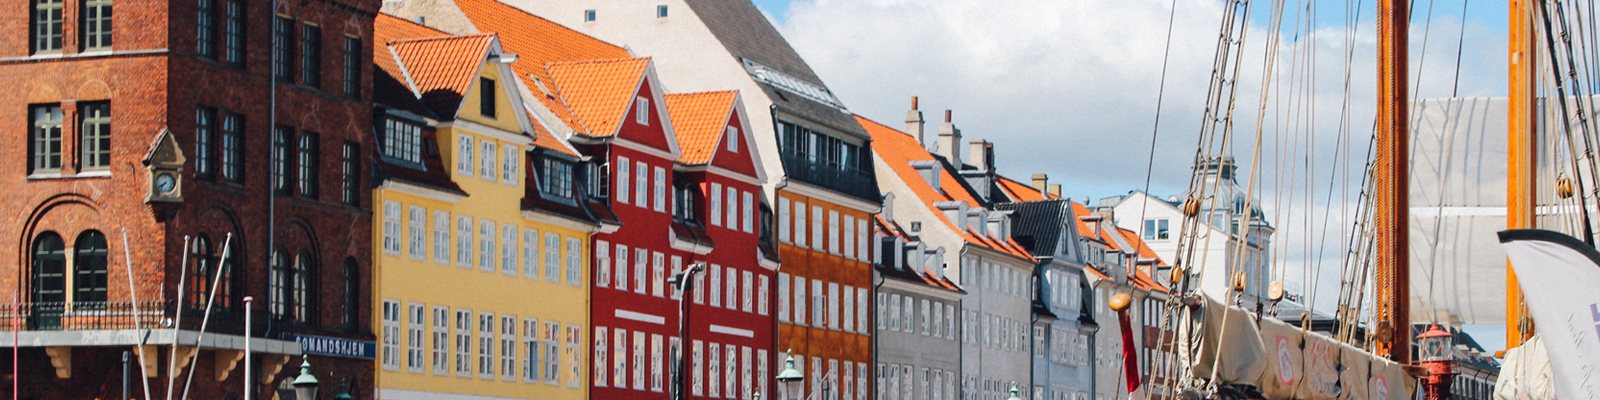 Denmark Vegan Travel Guide